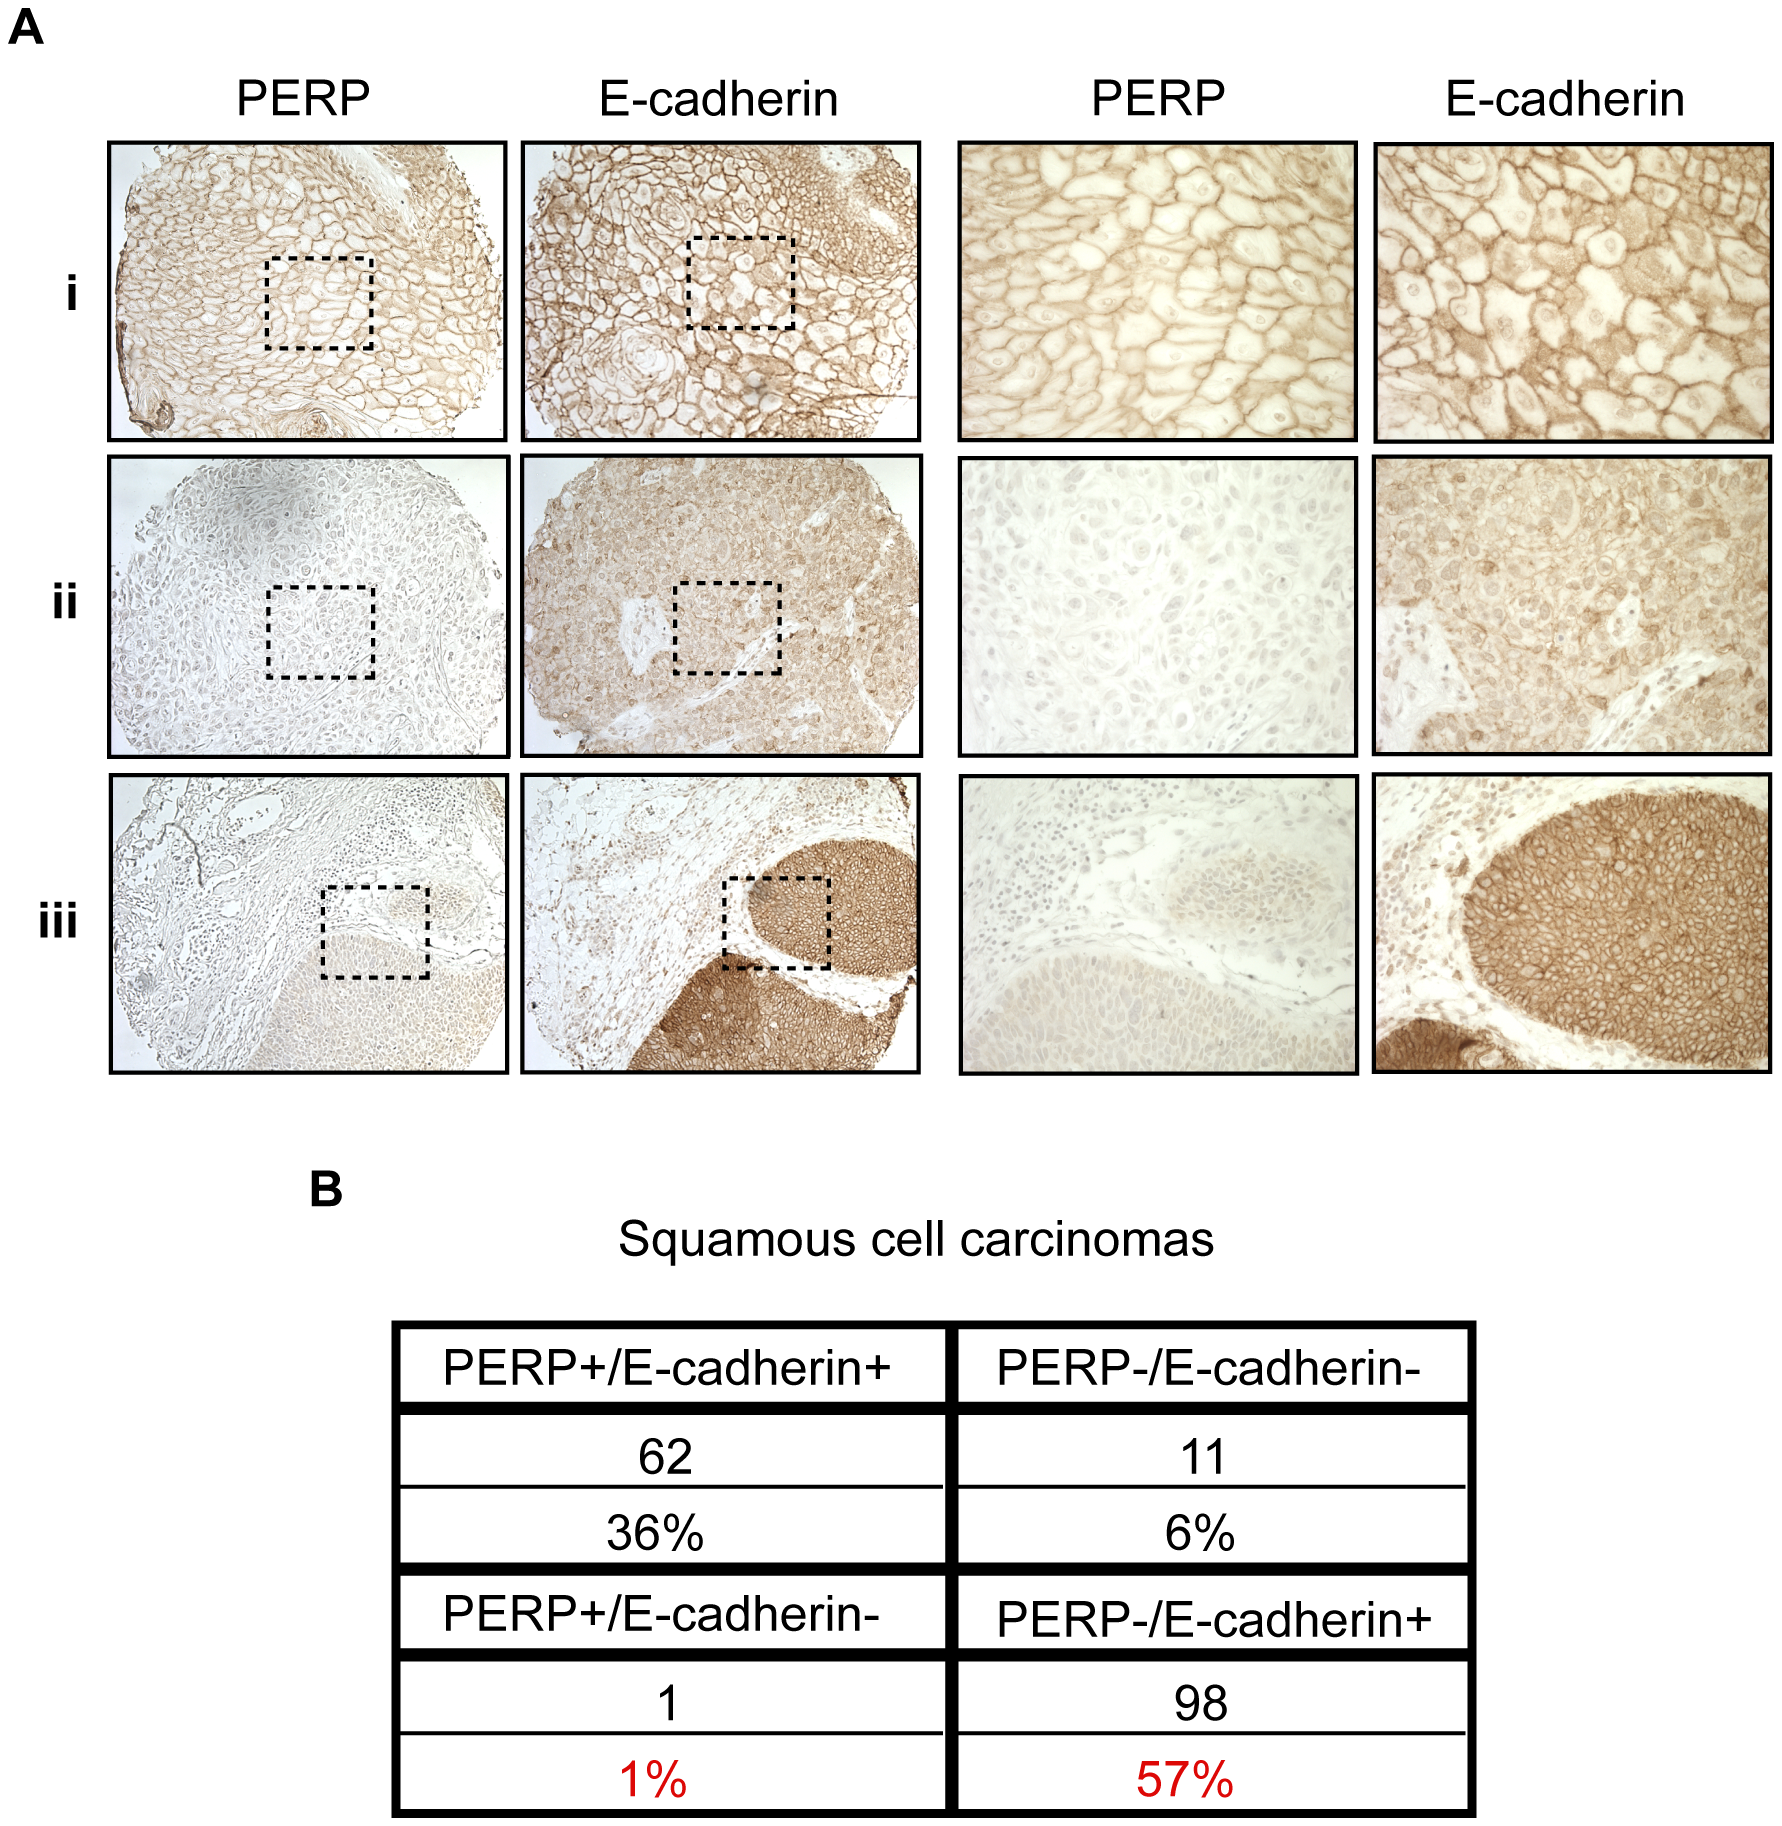 PERP loss with E-cadherin maintenance is a common event in human skin SCCs.